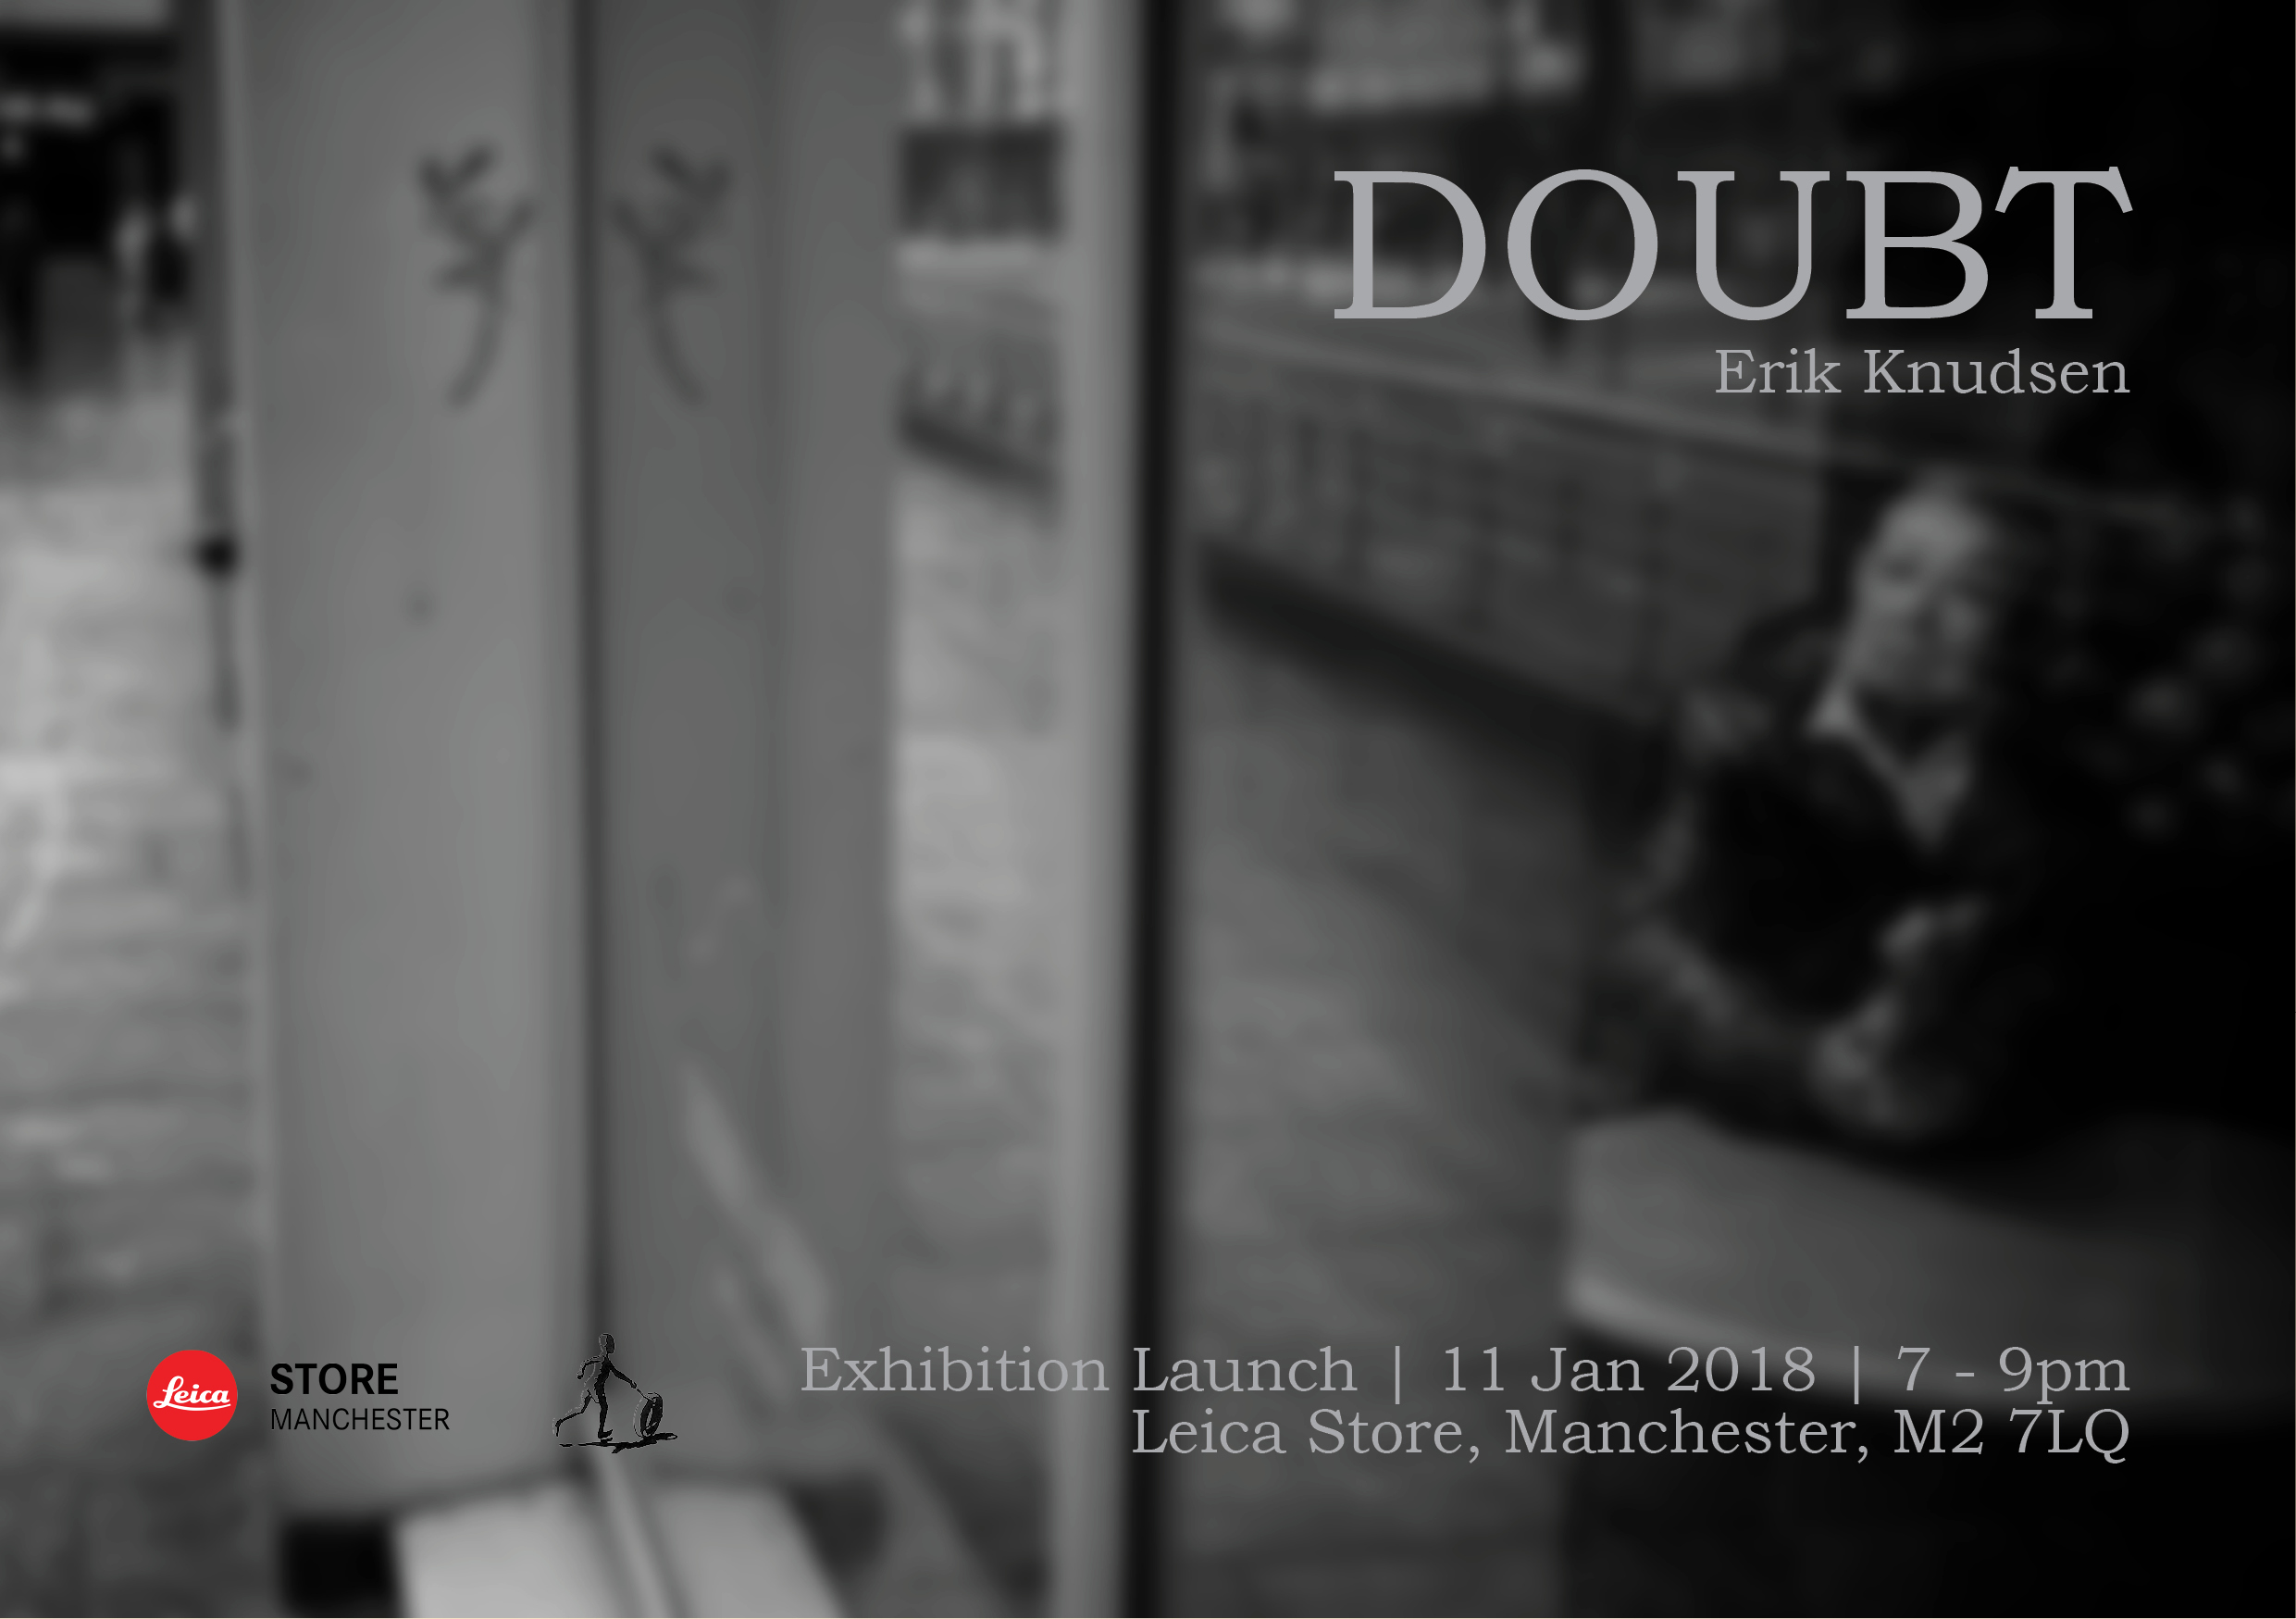 Doubt Exhibition and Book Launch with Erik Knudsen